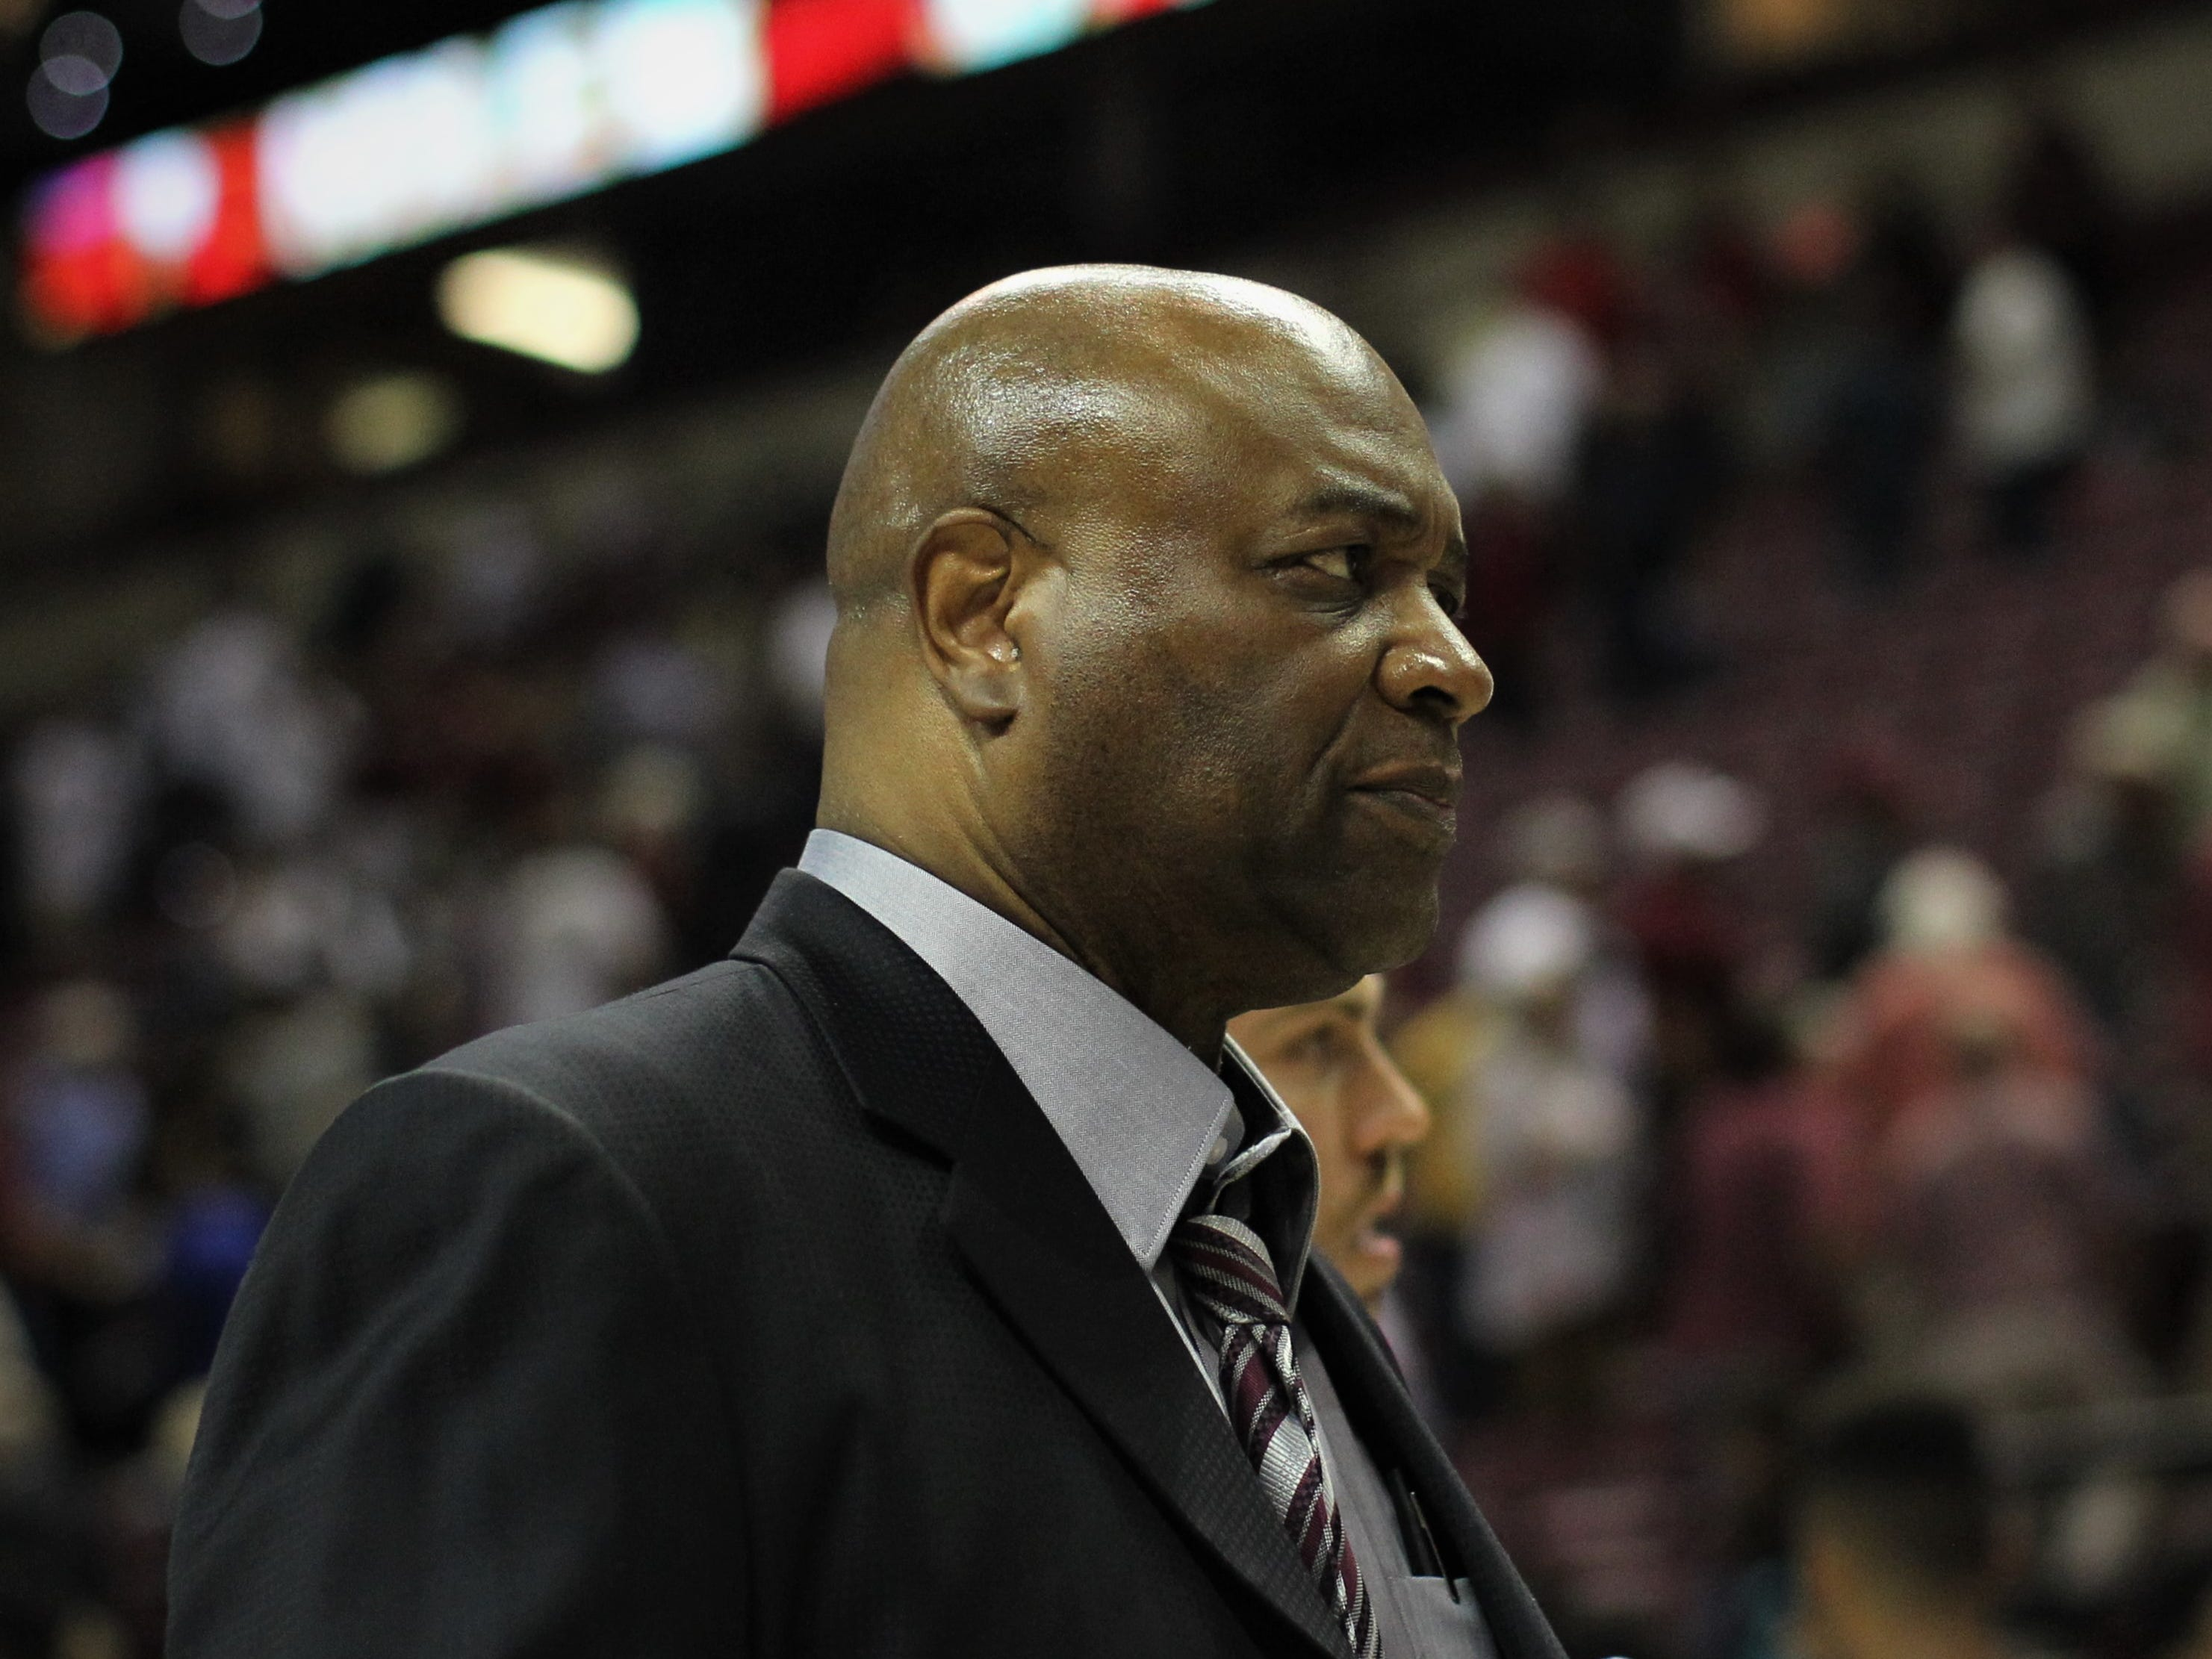 Florida State men's basketball head coach Leonard Hamilton walks off the court after a blowout win over Florida during the Sunshine Showdown game Tuesday at the Tucker Civic Center.